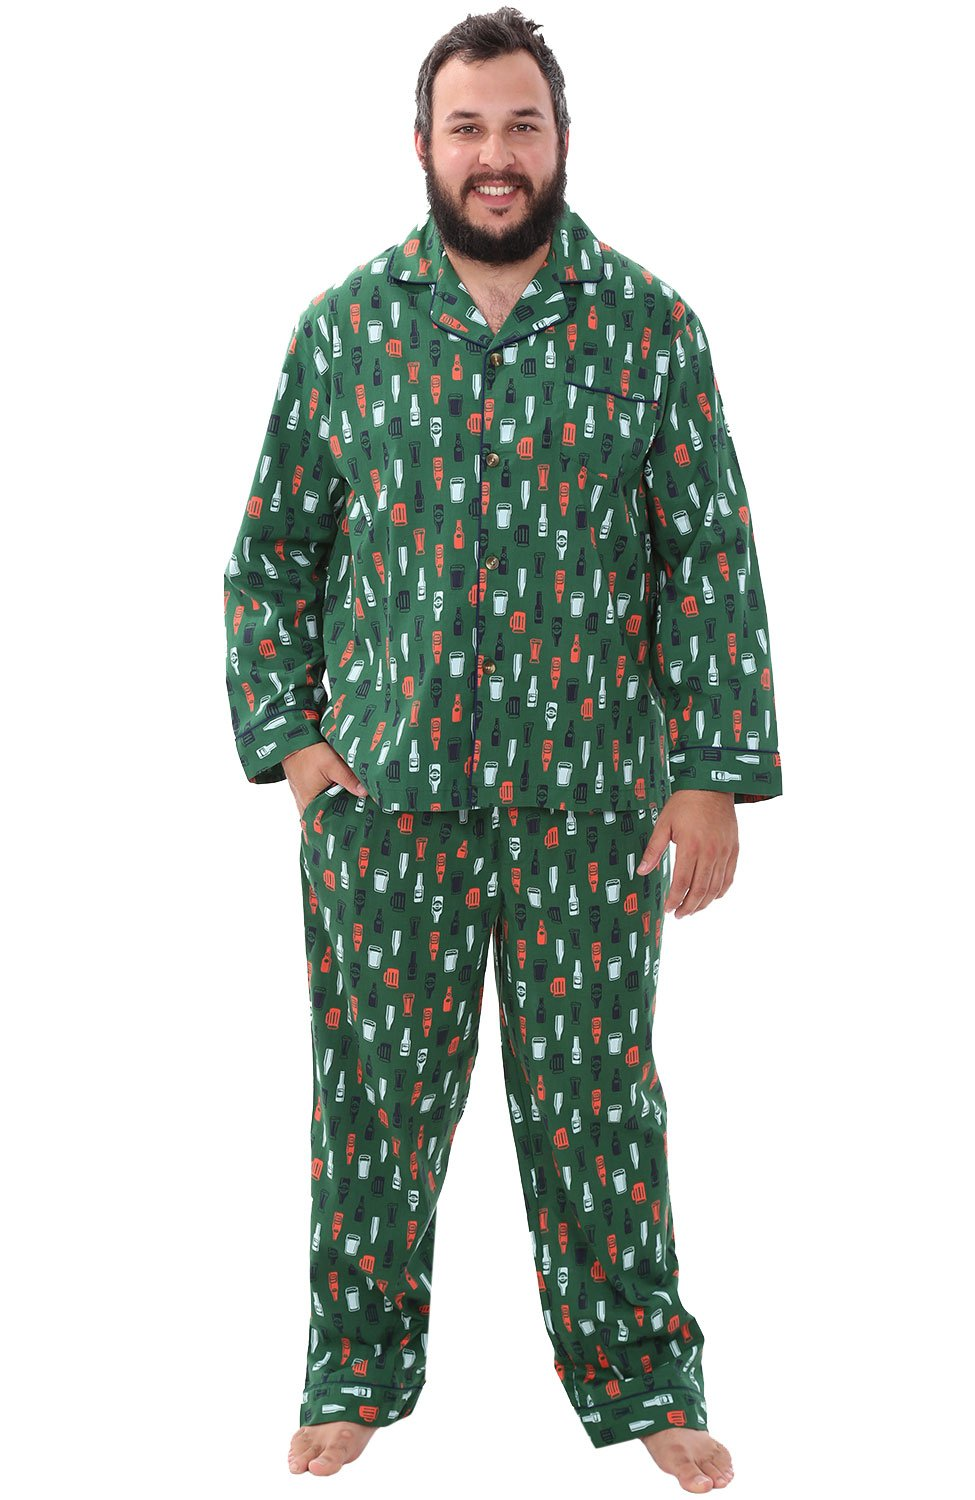 Alexander Del Rossa Mens Cotton Pajamas, Long Woven Pj Set, Large Beer Mugs and Bottles on Green (A0714V64LG)